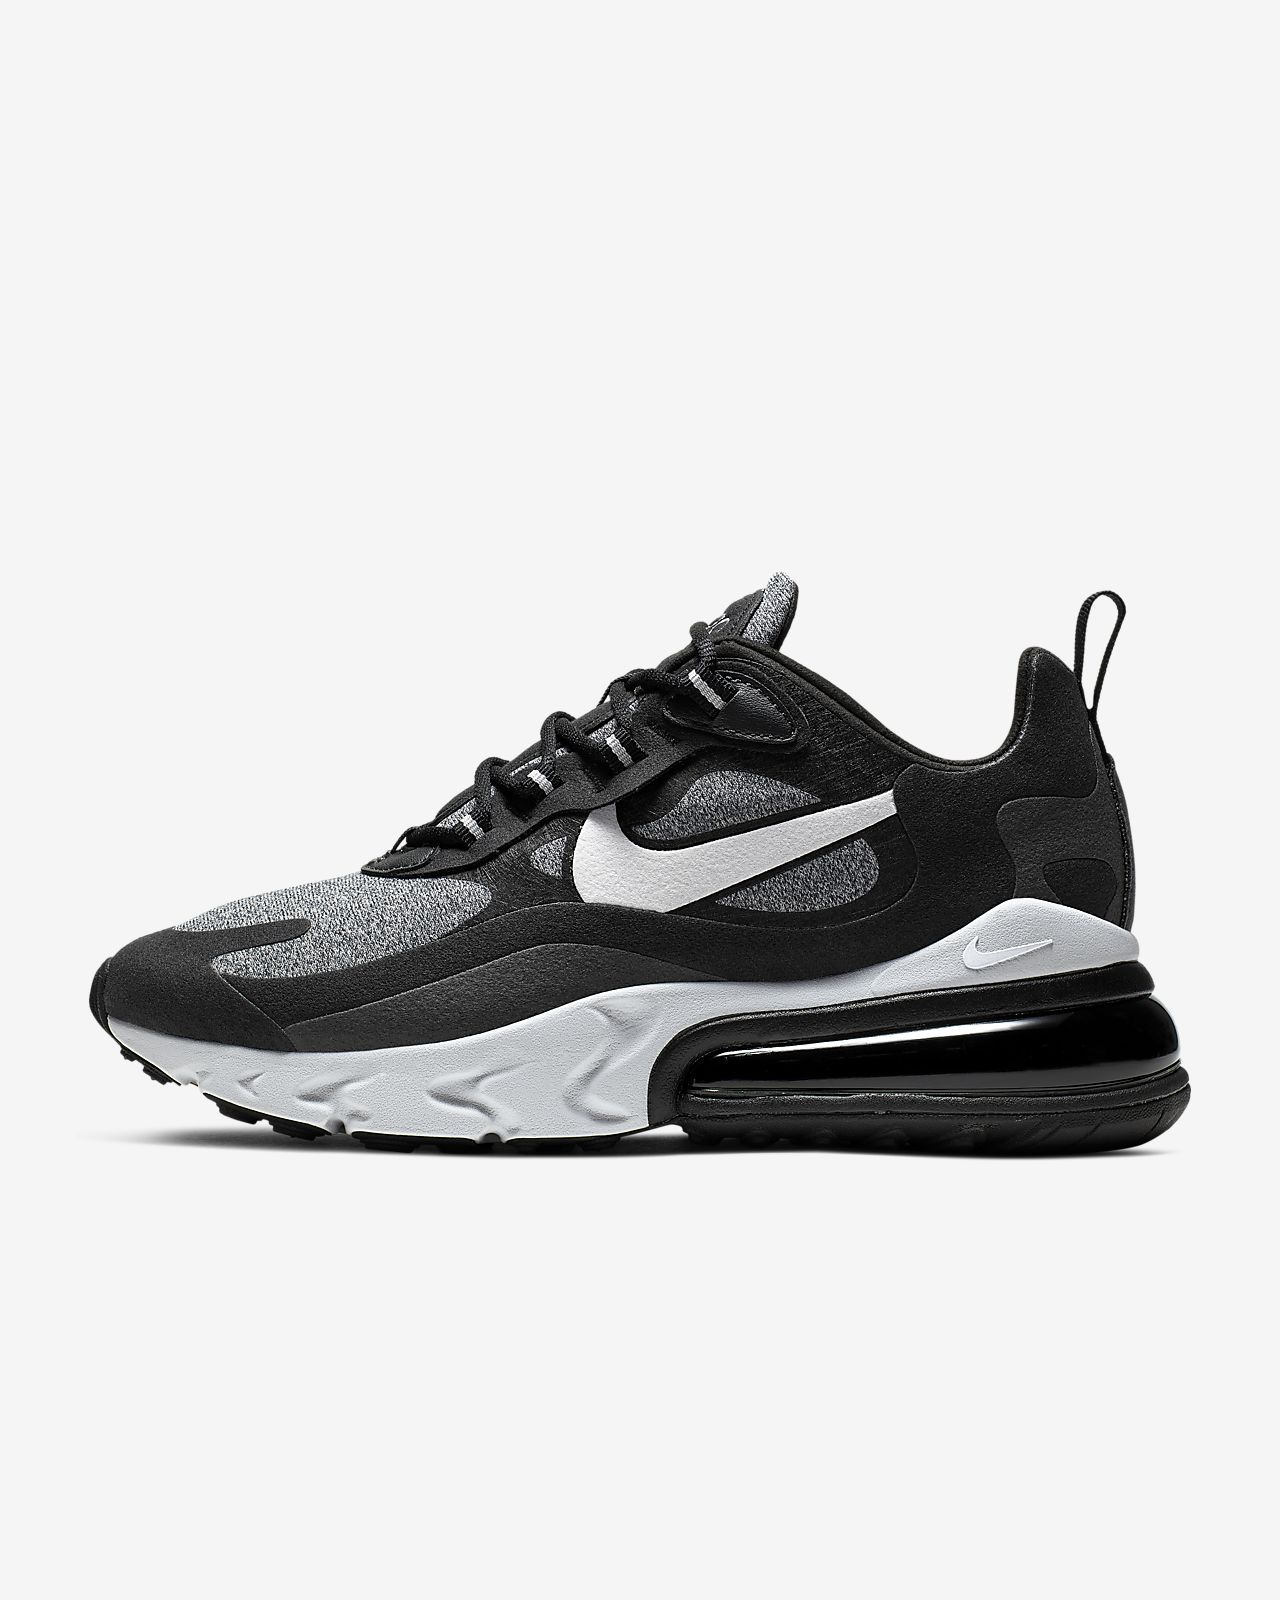 new styles 8fb14 827ef ... Nike Air Max 270 React Women s Shoe